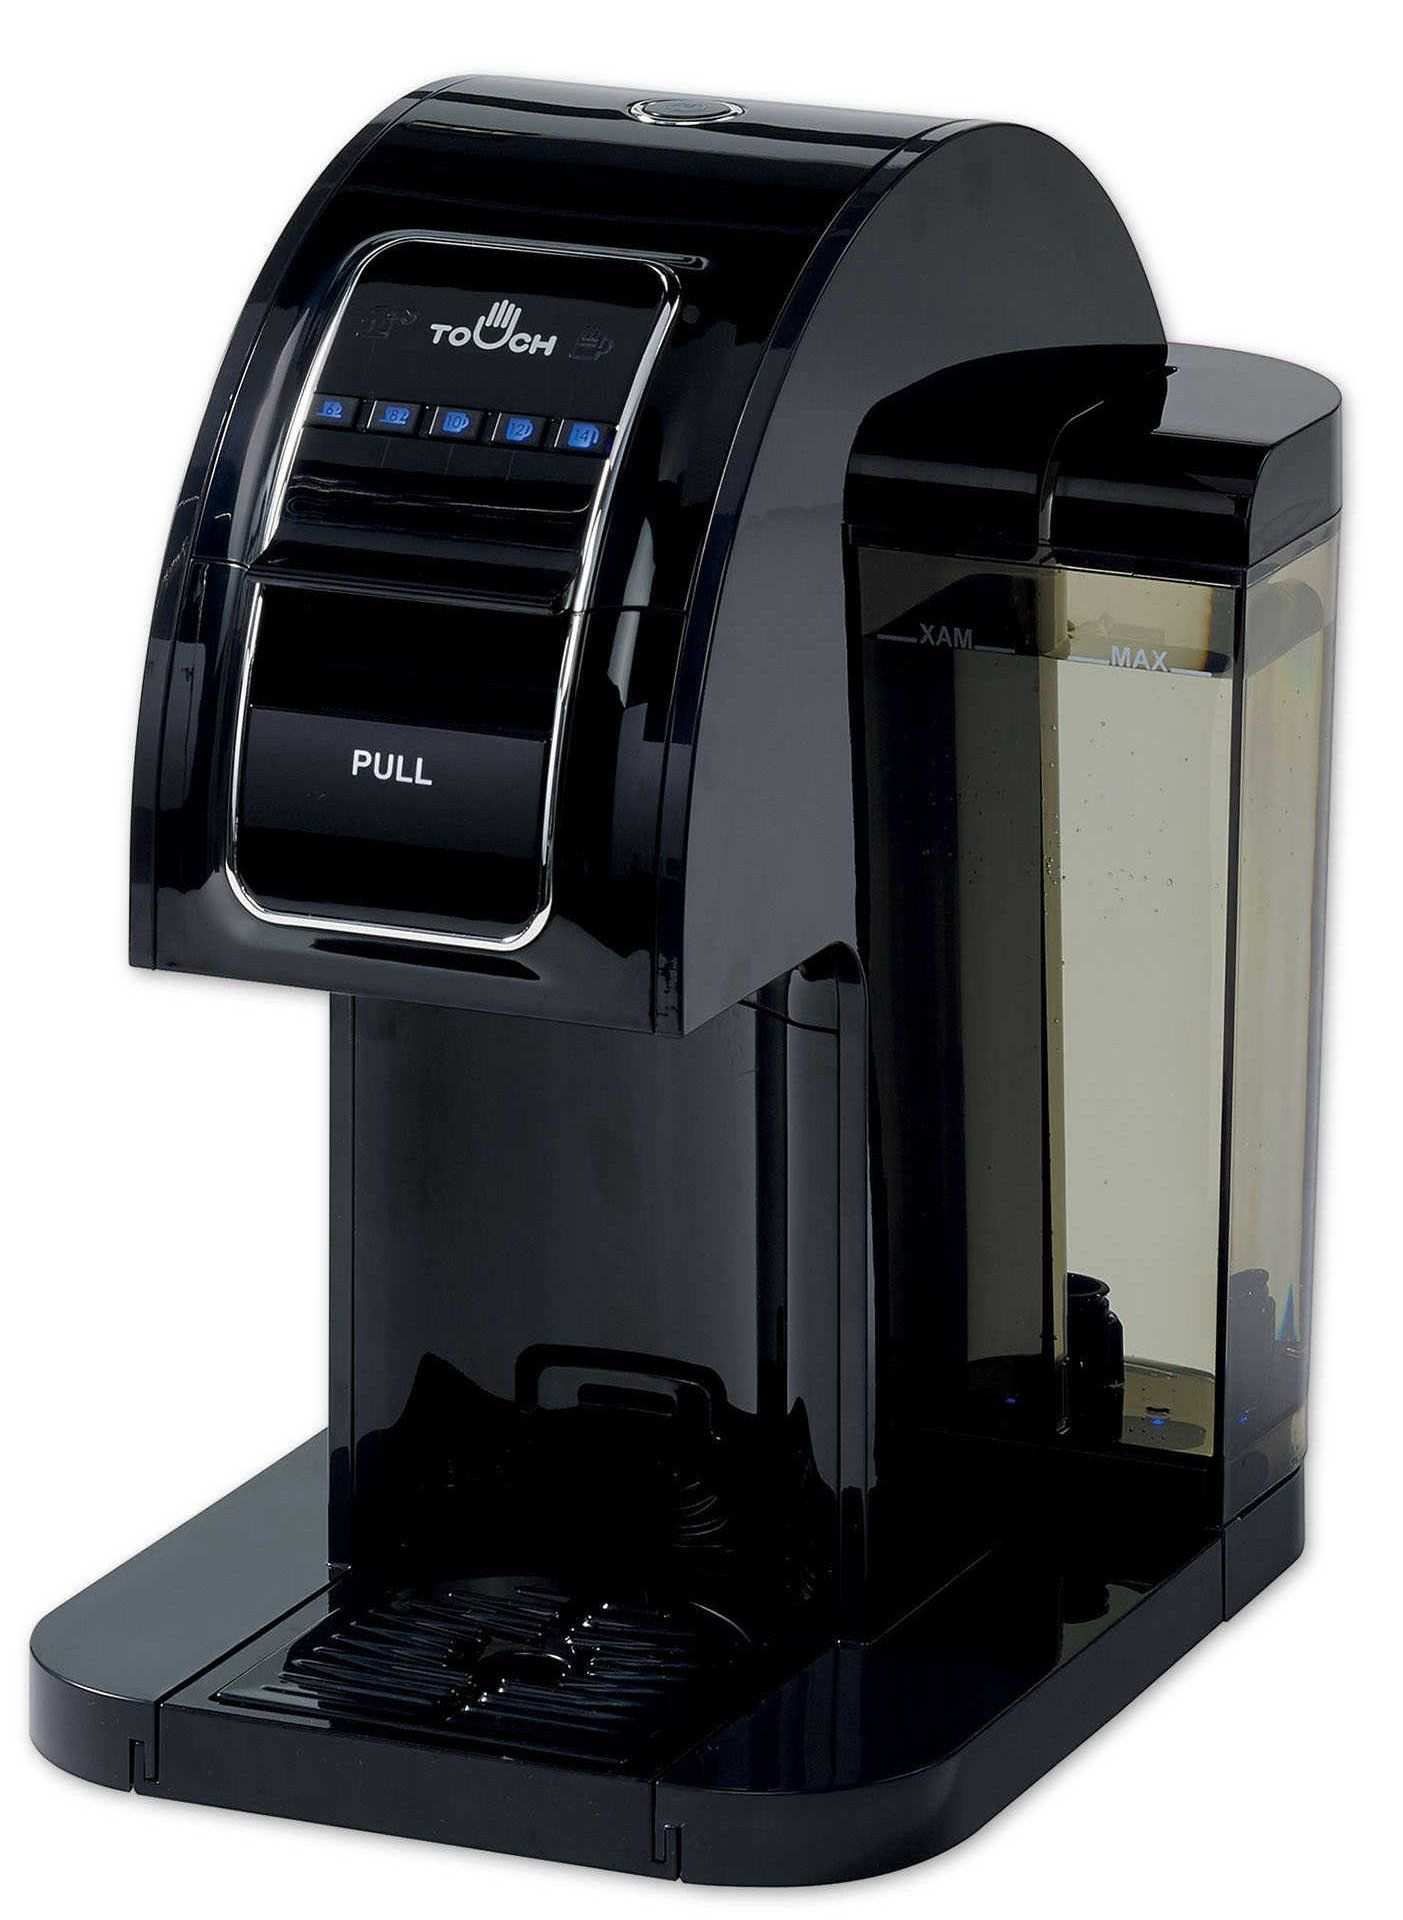 Touch Single Serve Coffee Brewer Black Coffee Maker with